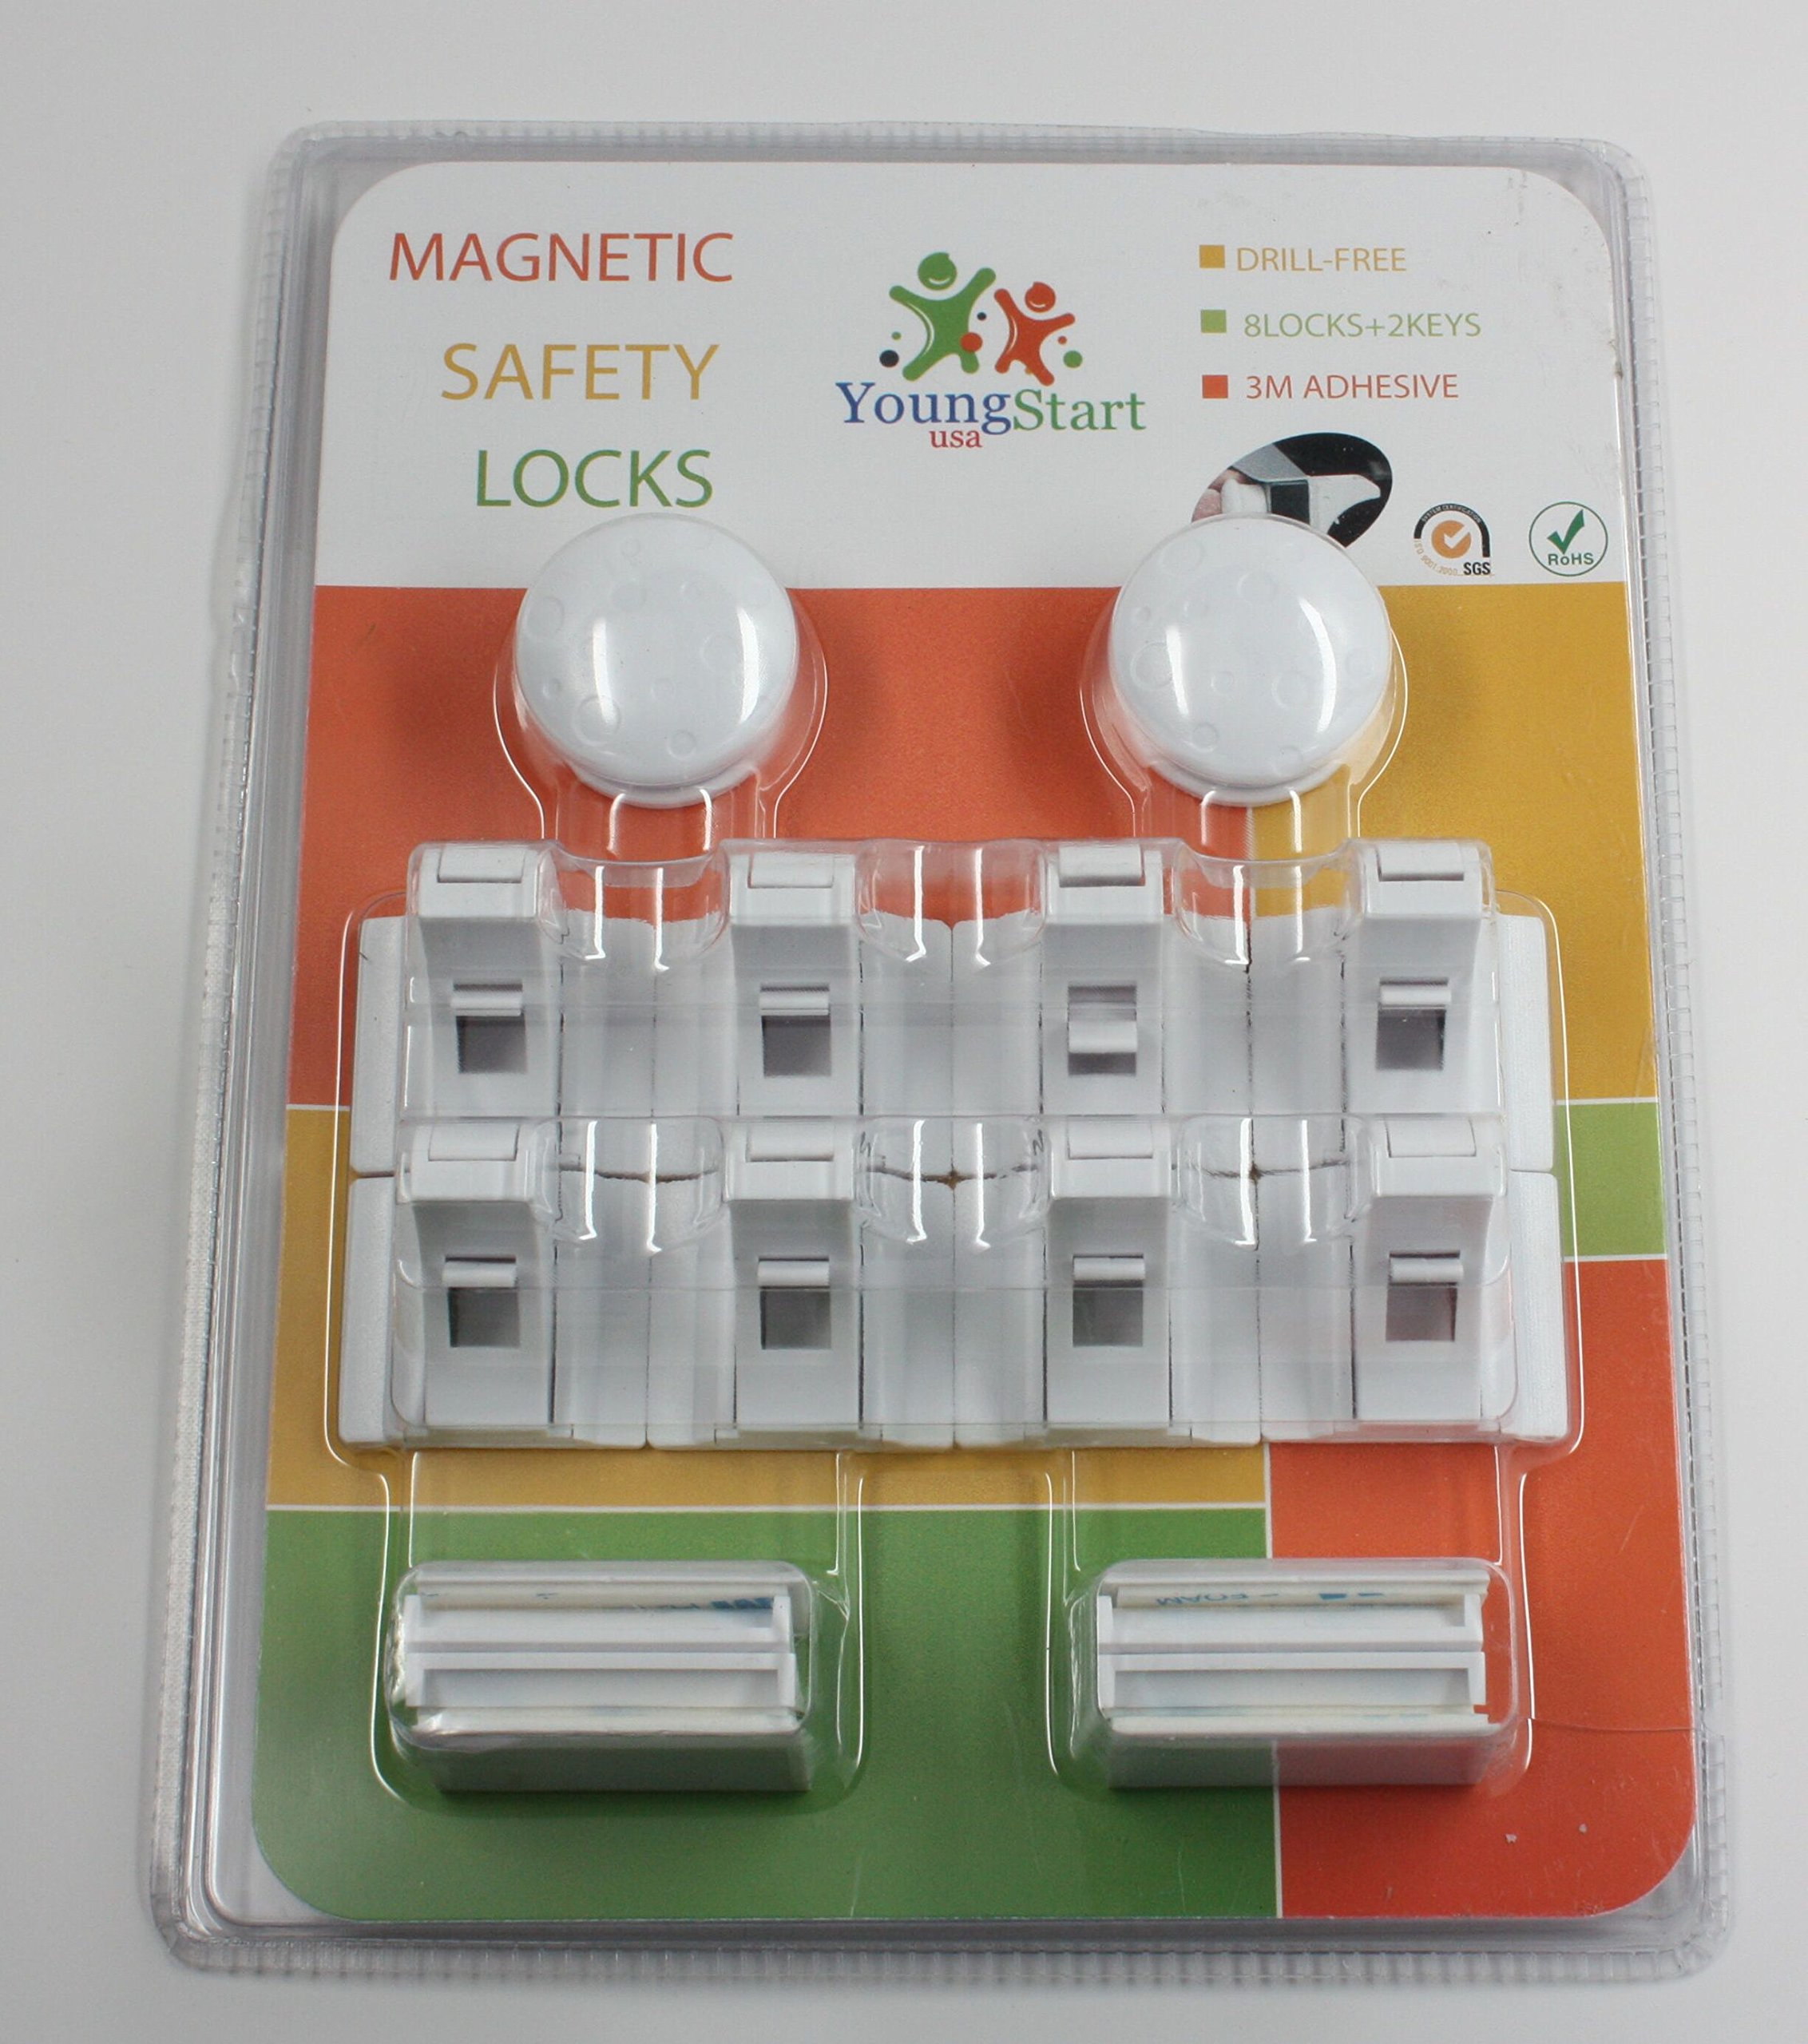 Young Start Magnetic invisible Baby and Child proof Safety Locks for Cabinets and Drawers, 8 Locks and 2 Keys, Easy to fit, No Tools,Nails or Screws required